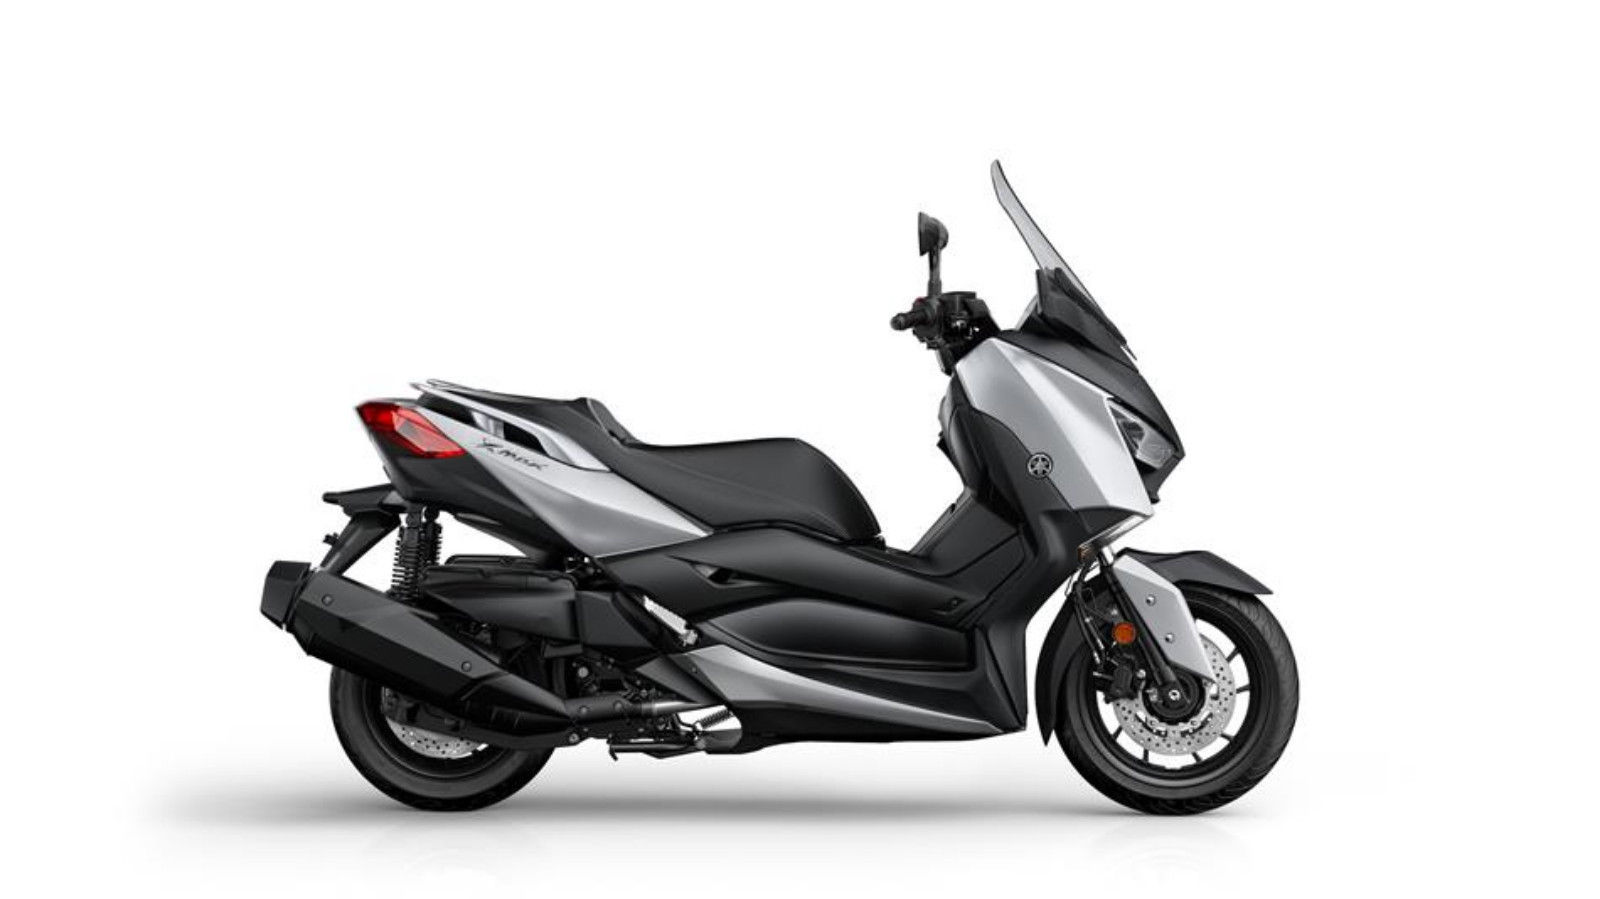 TRICITY125 ABS Modell 2017 SOFORT LIEFERBAR !!